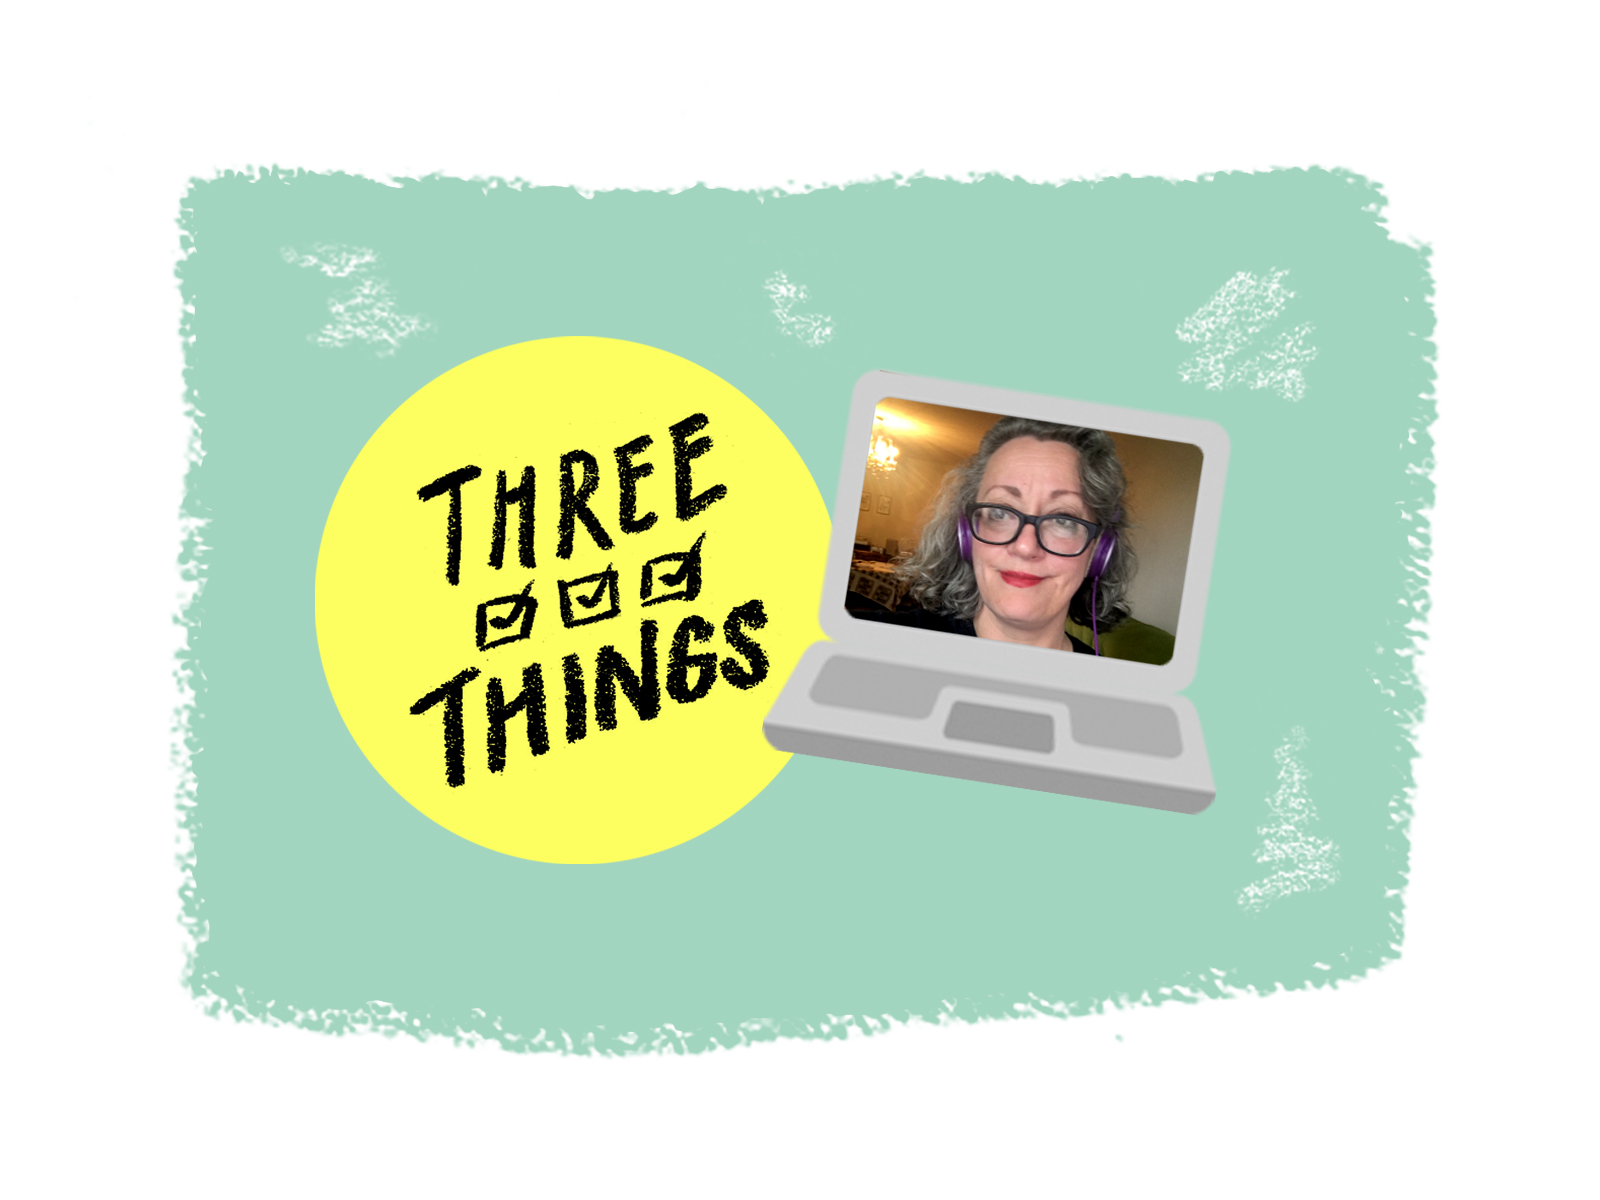 Hang with Dorothy Woodend Wednesday. She Has Three Things to Share | The Tyee